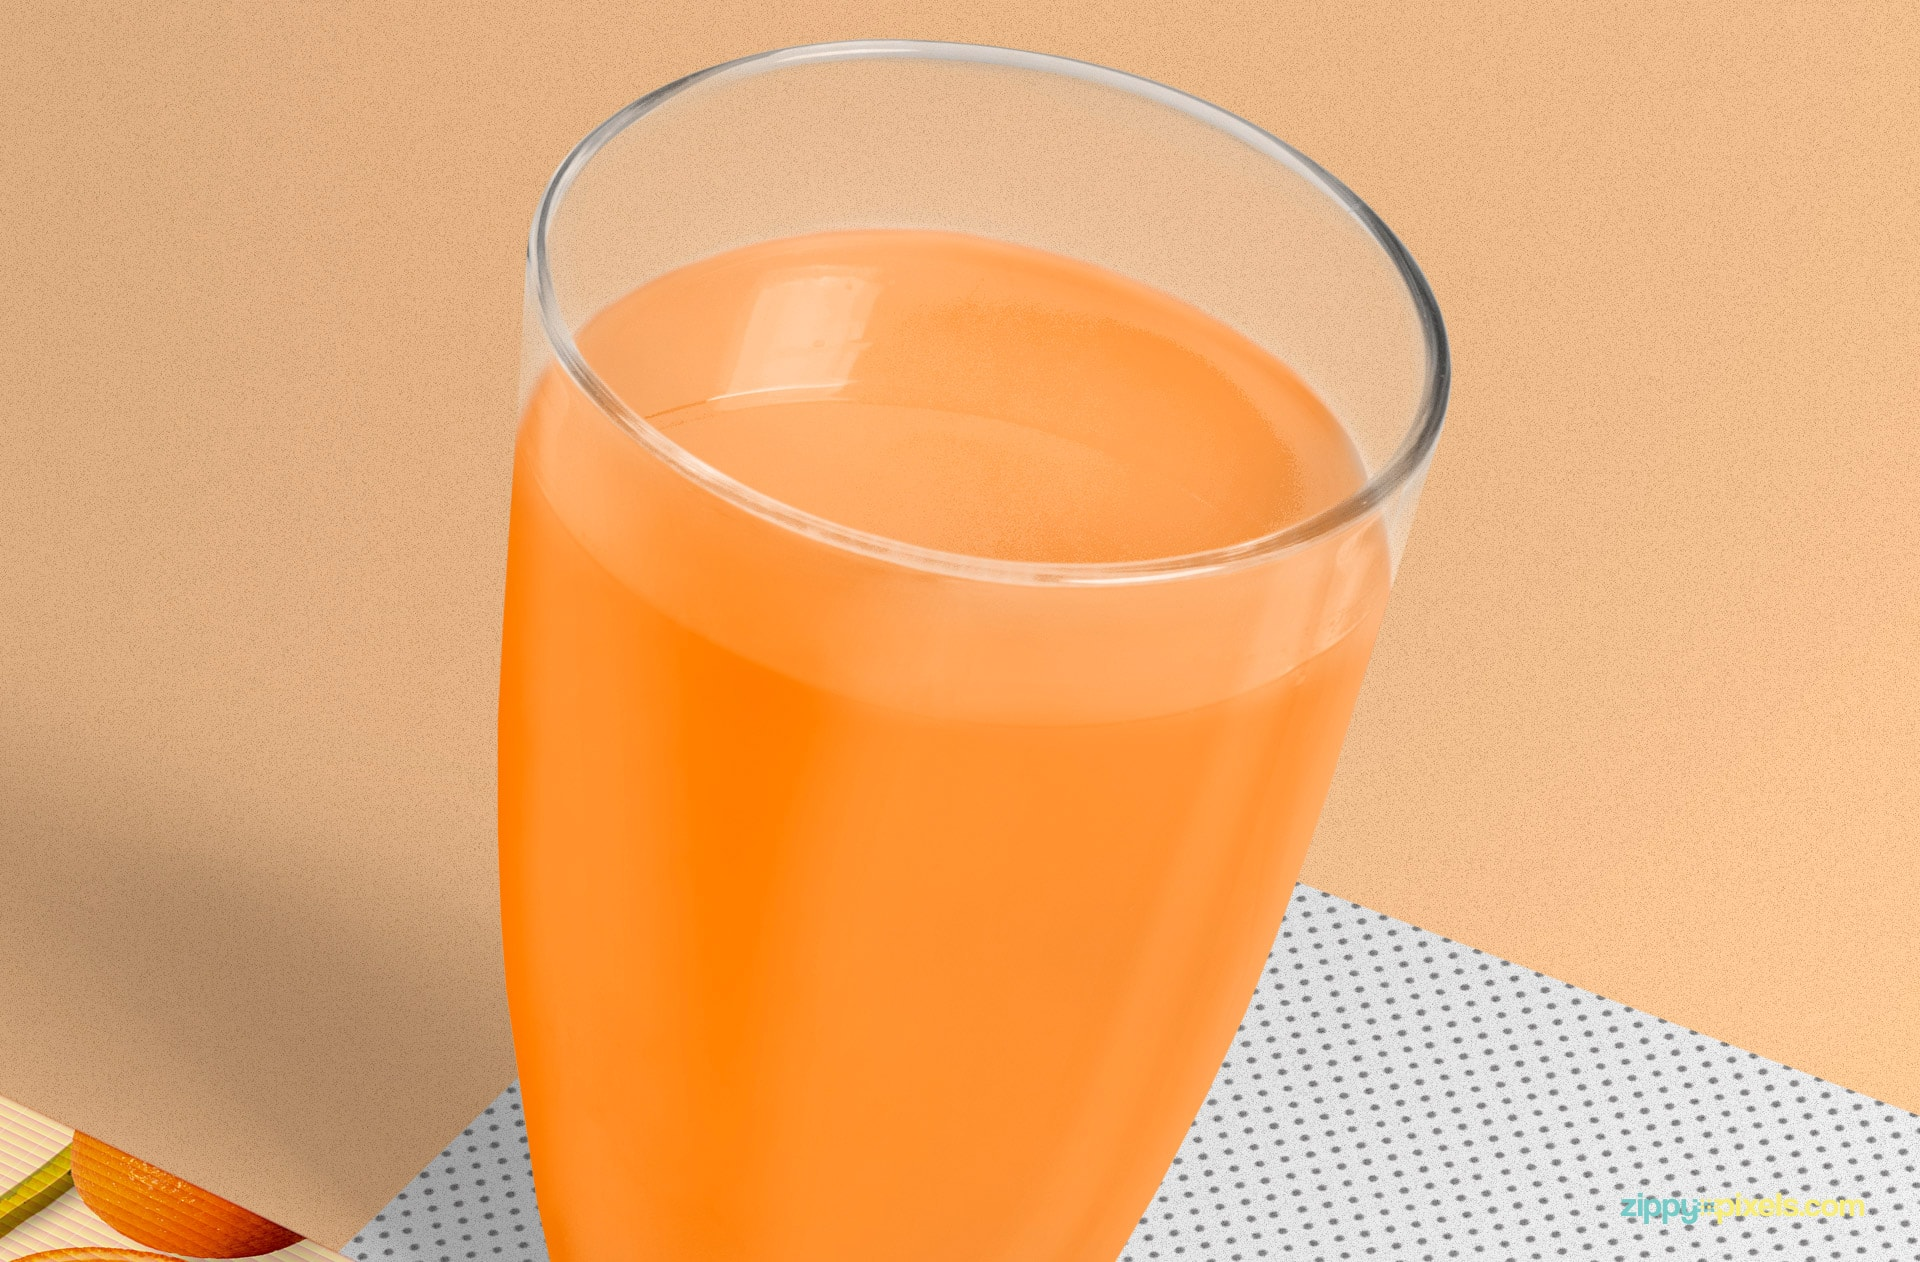 You can change the color of the juice glass.